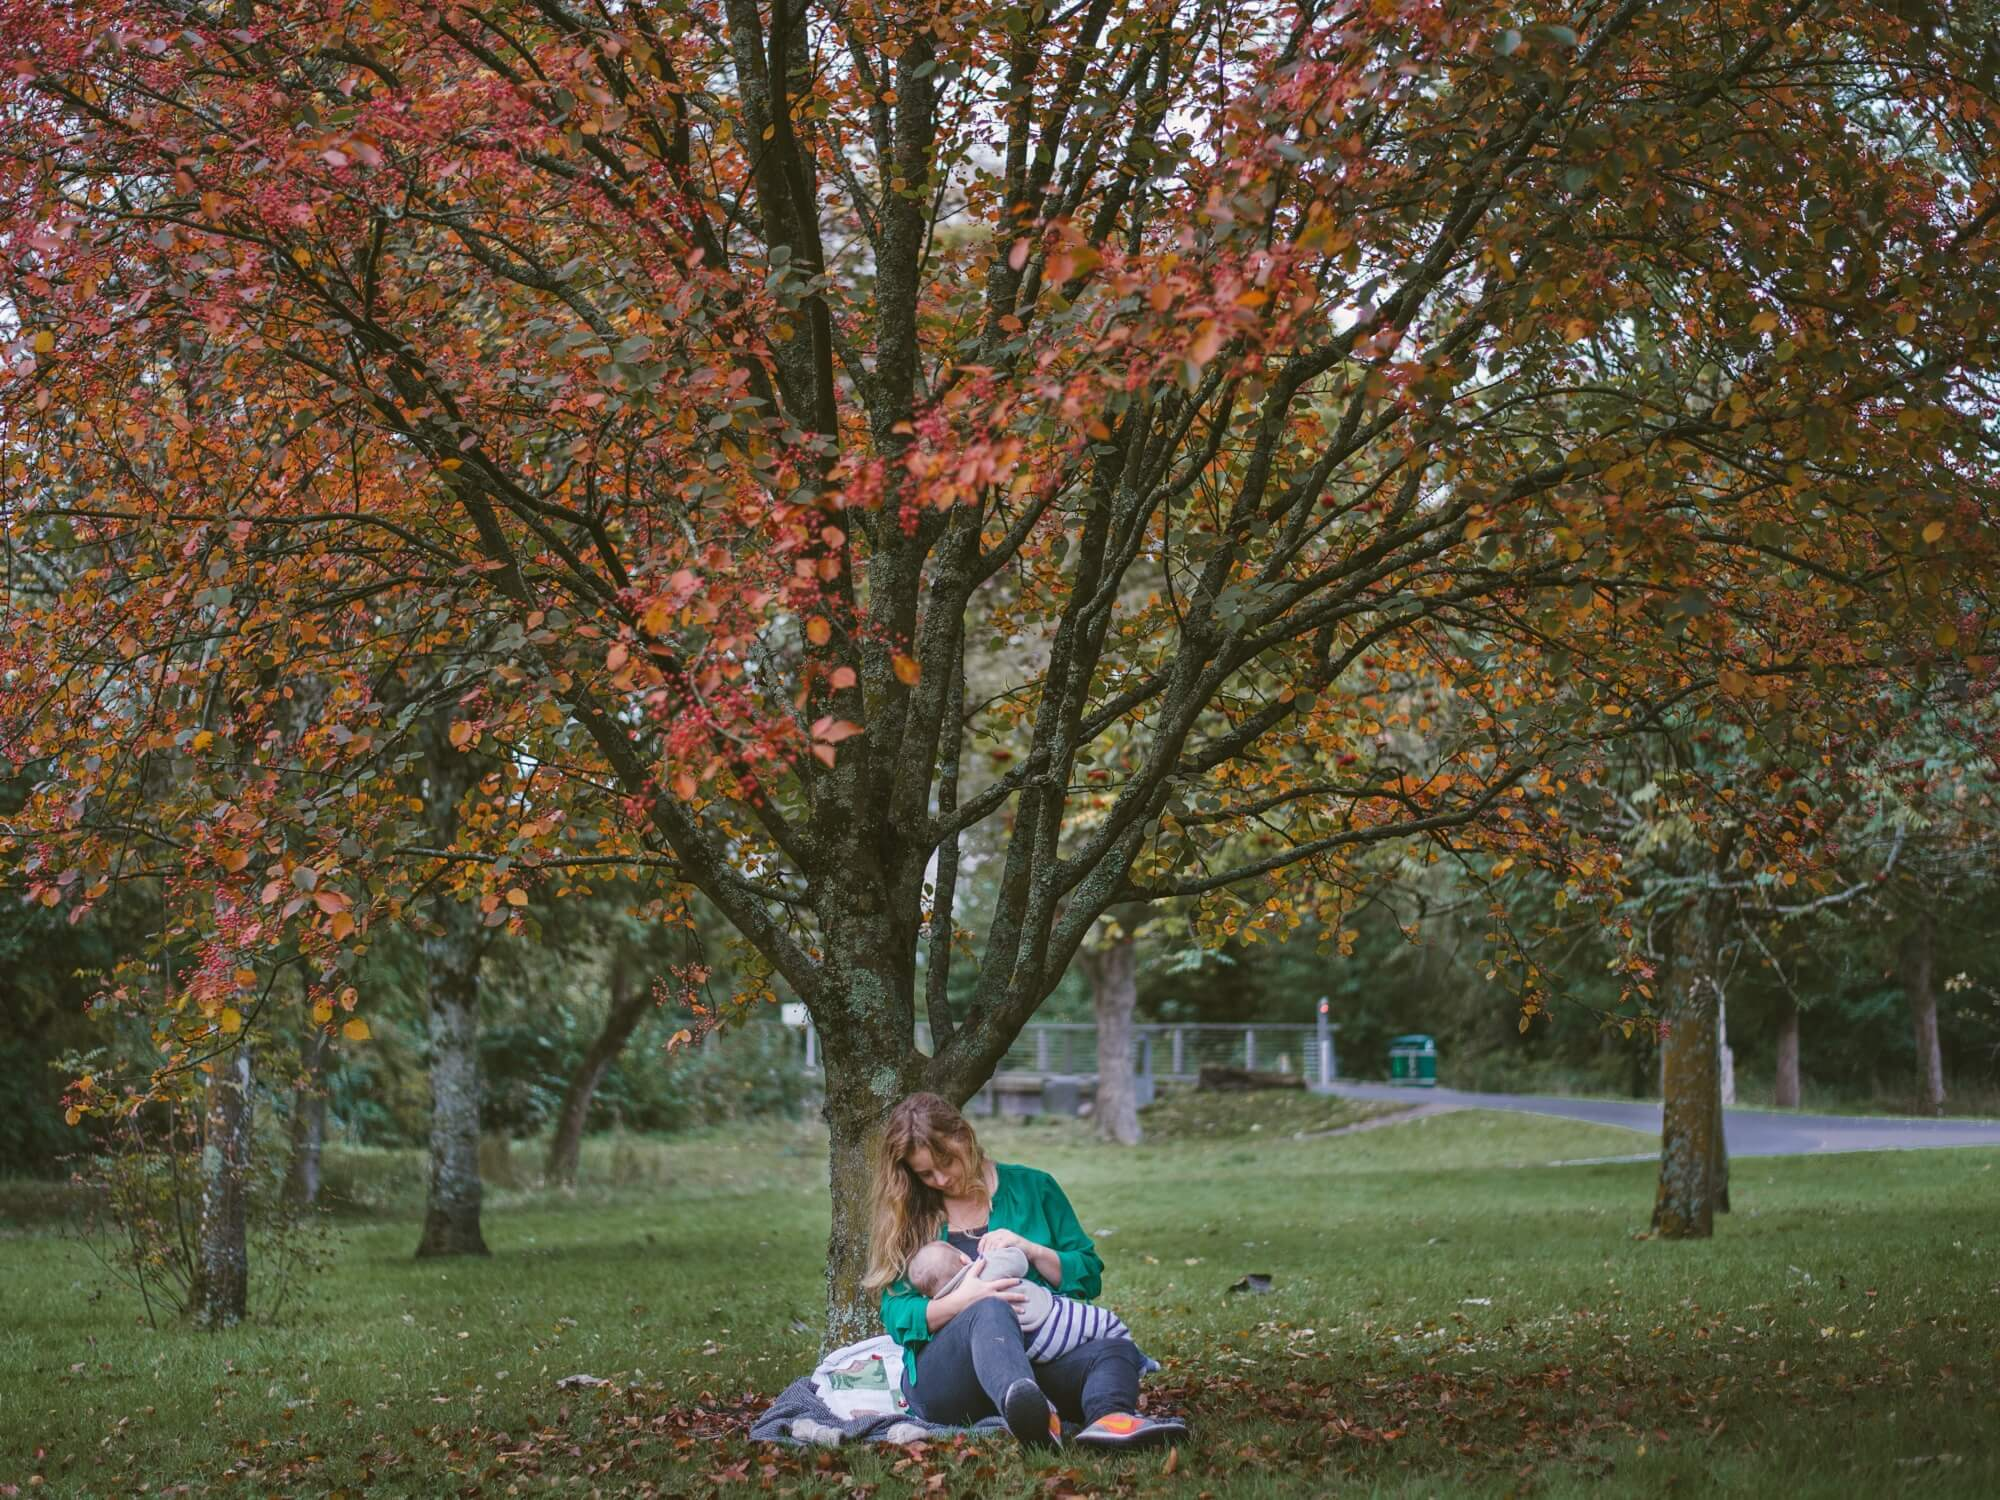 A woman sitting under a tree in a park, holding a baby in her lap